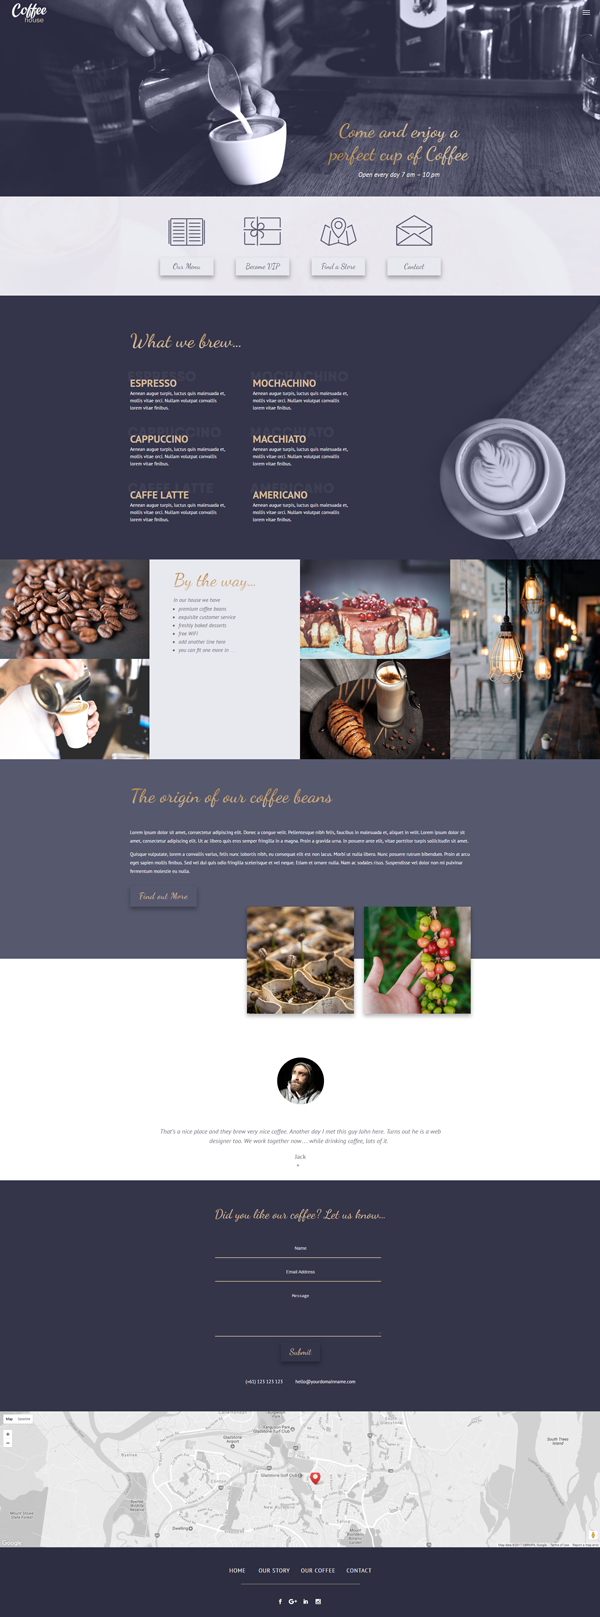 Coffee house a free divi layout pack for coffee shops and - Elegant theme divi ...